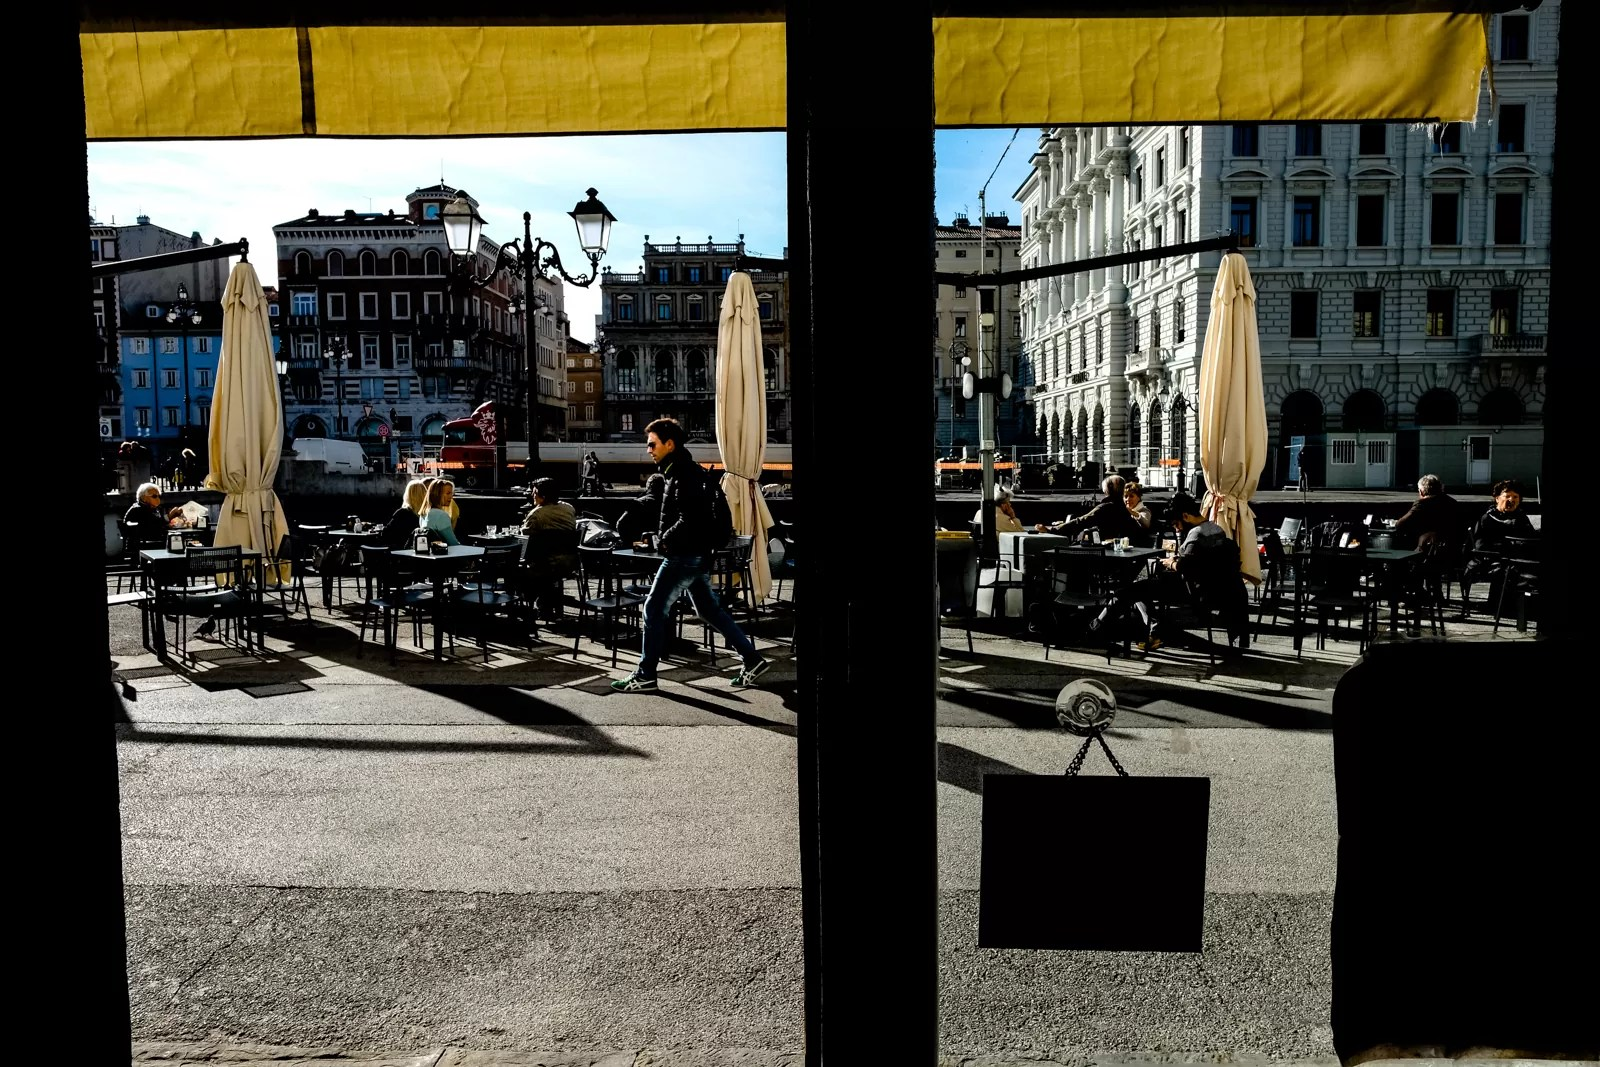 DSCF3264 - One Day in Trieste [Color Street Photography] - fotostreet.it